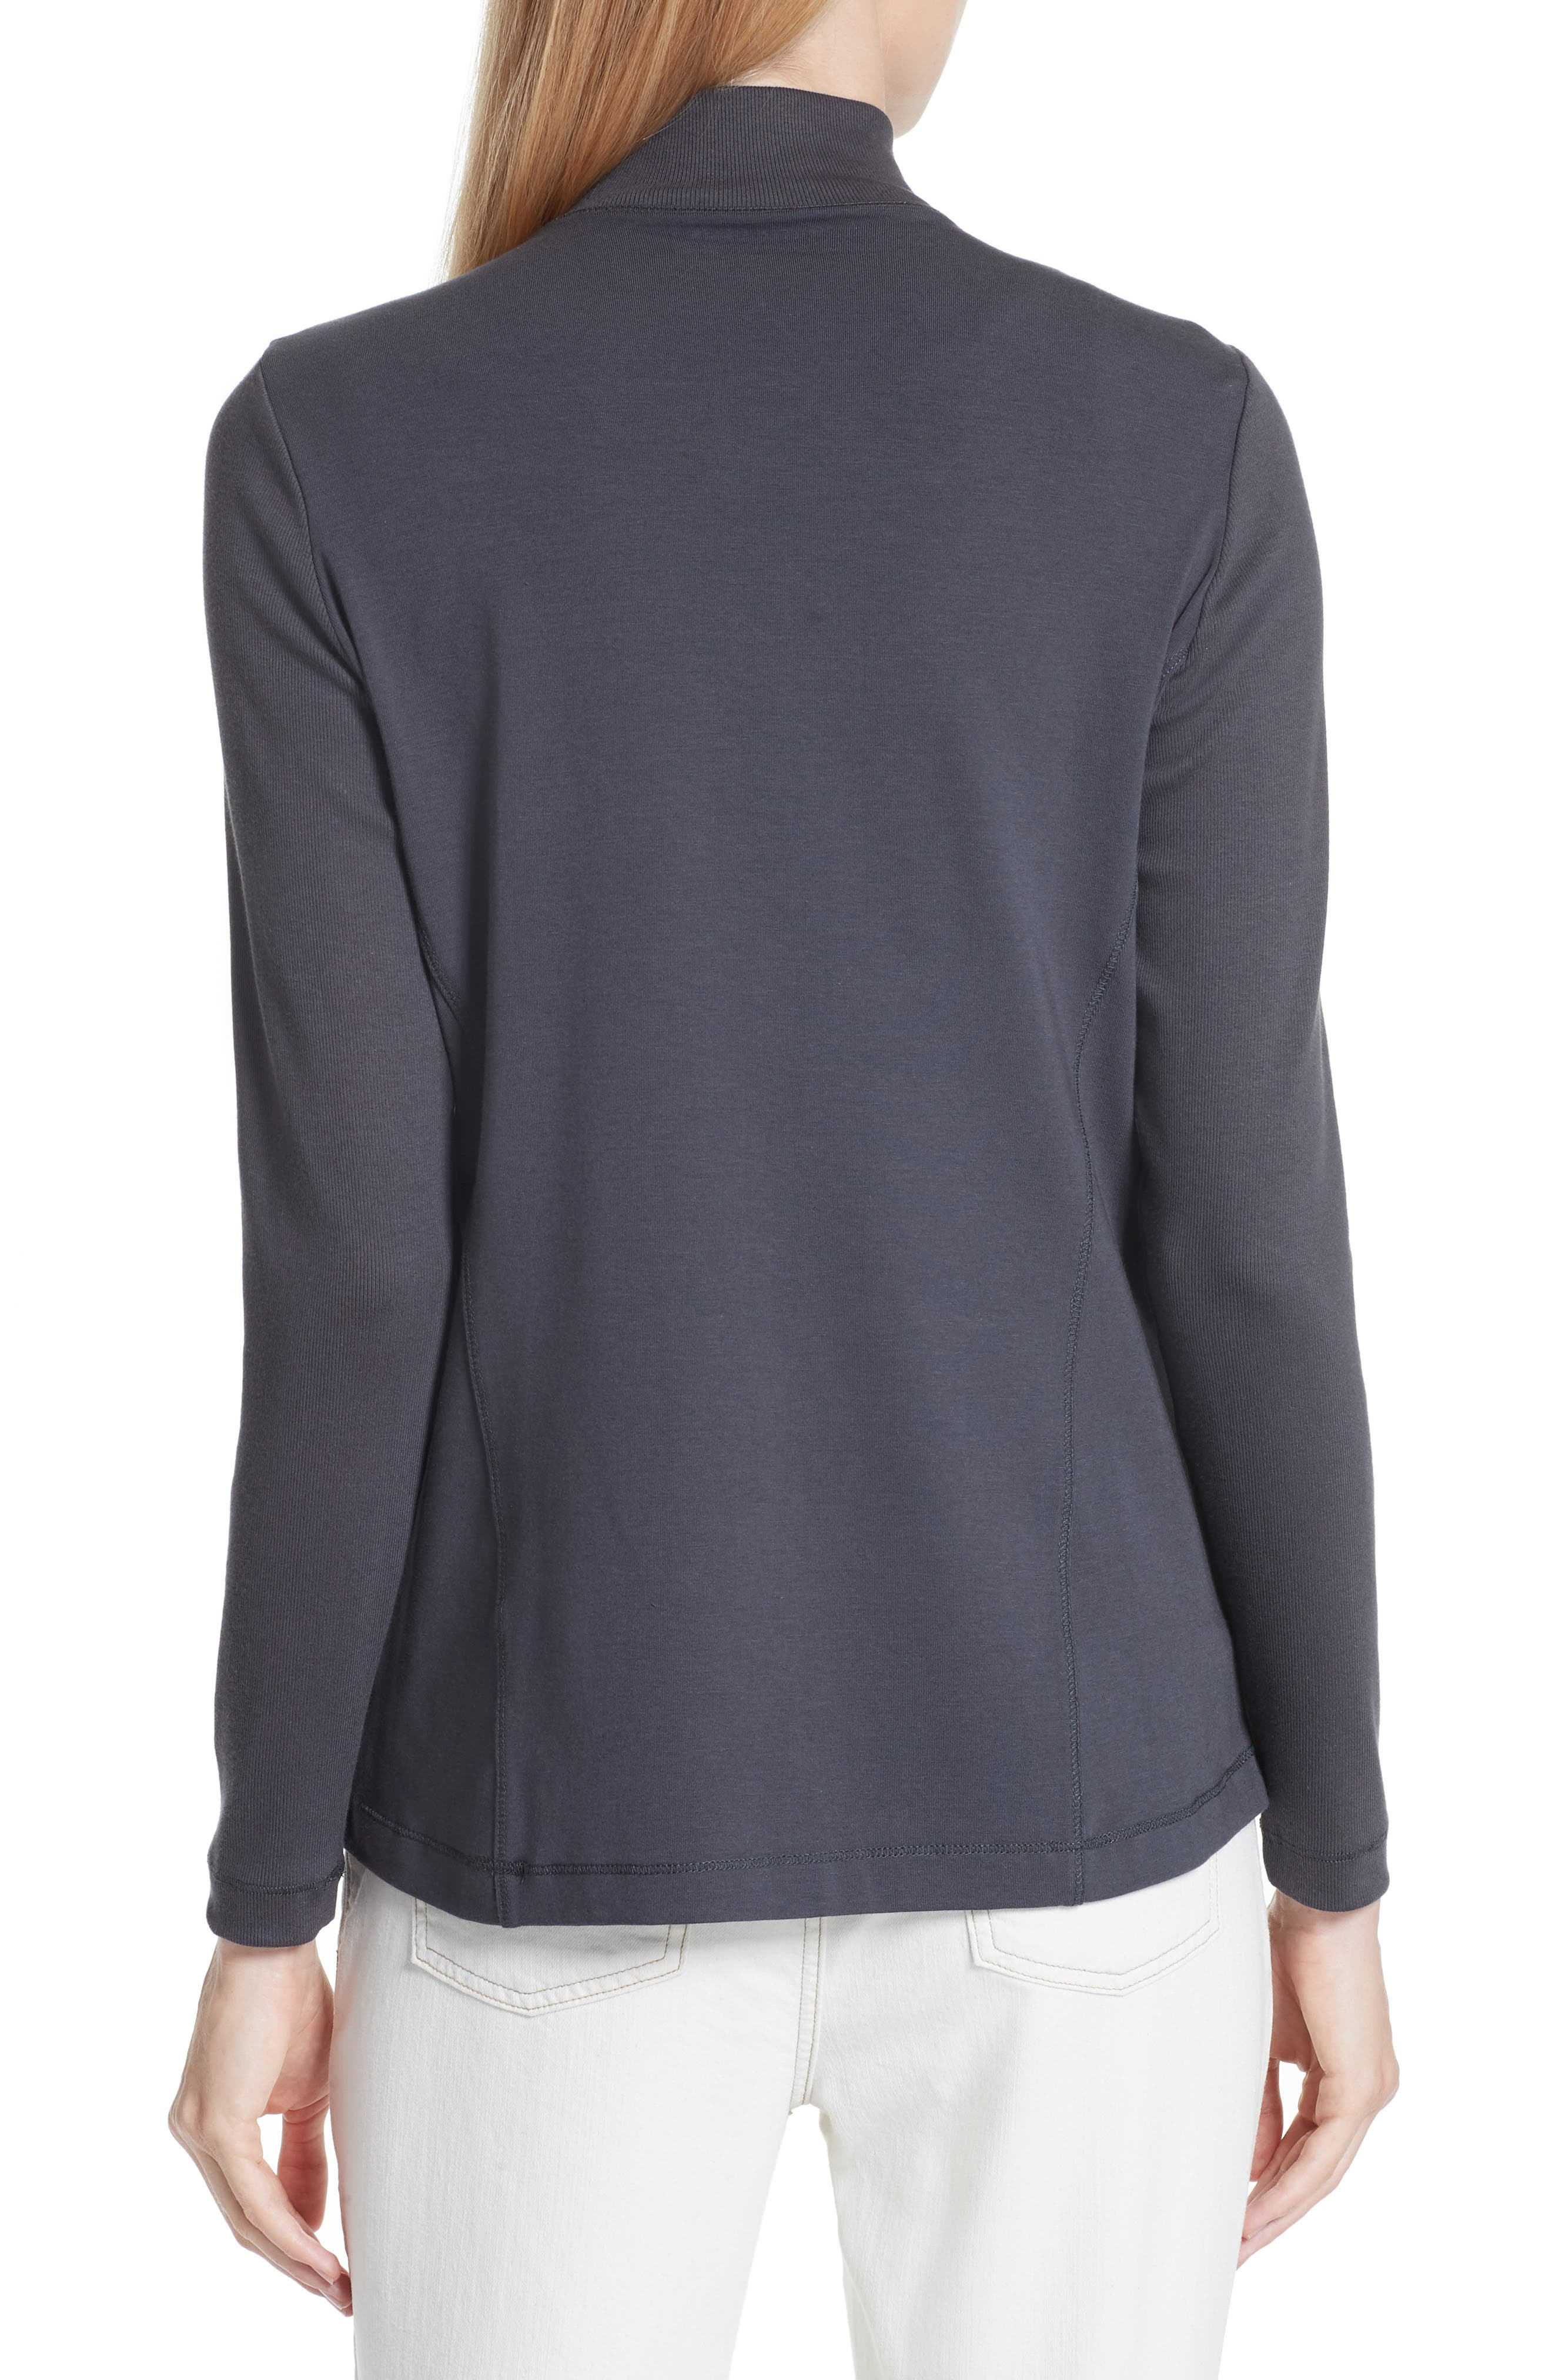 Mixed Organic Cotton Stretch Knit Jacket,                             Alternate thumbnail 2, color,                             Graphite